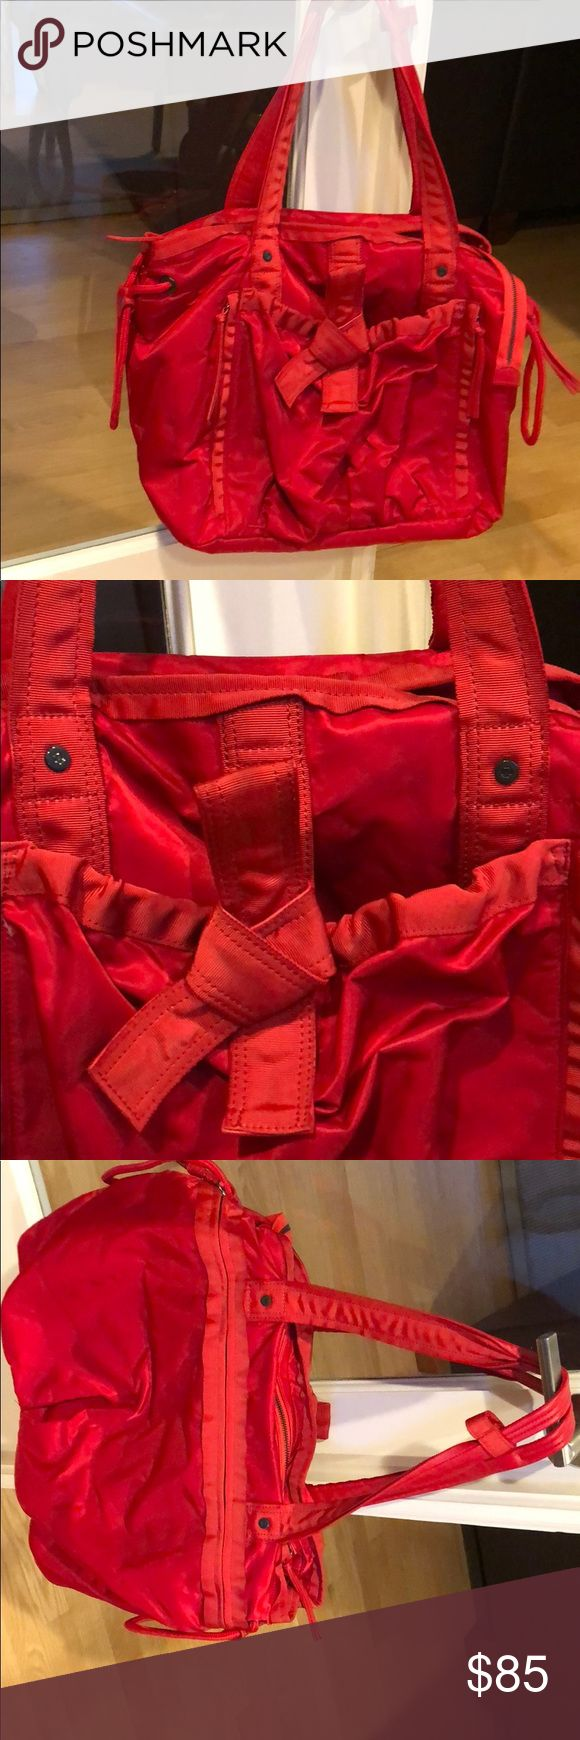 """Large Gorgeous Red Lululemon Athletica Sports Bag Great Lululemon red sports bag. Very good used condition.   Small mark on side where it looks like the bag rubbed against something light and a water looking stain around 6 1/2 long and 1"""" wide. Never noticed it until I examined the Bag closely. Inside of bag is spotless and includes a bag that folds inside. Approximately 13 1/3"""" H x 19"""" W and 6 1/2"""" D lululemon athletica Bags Totes"""